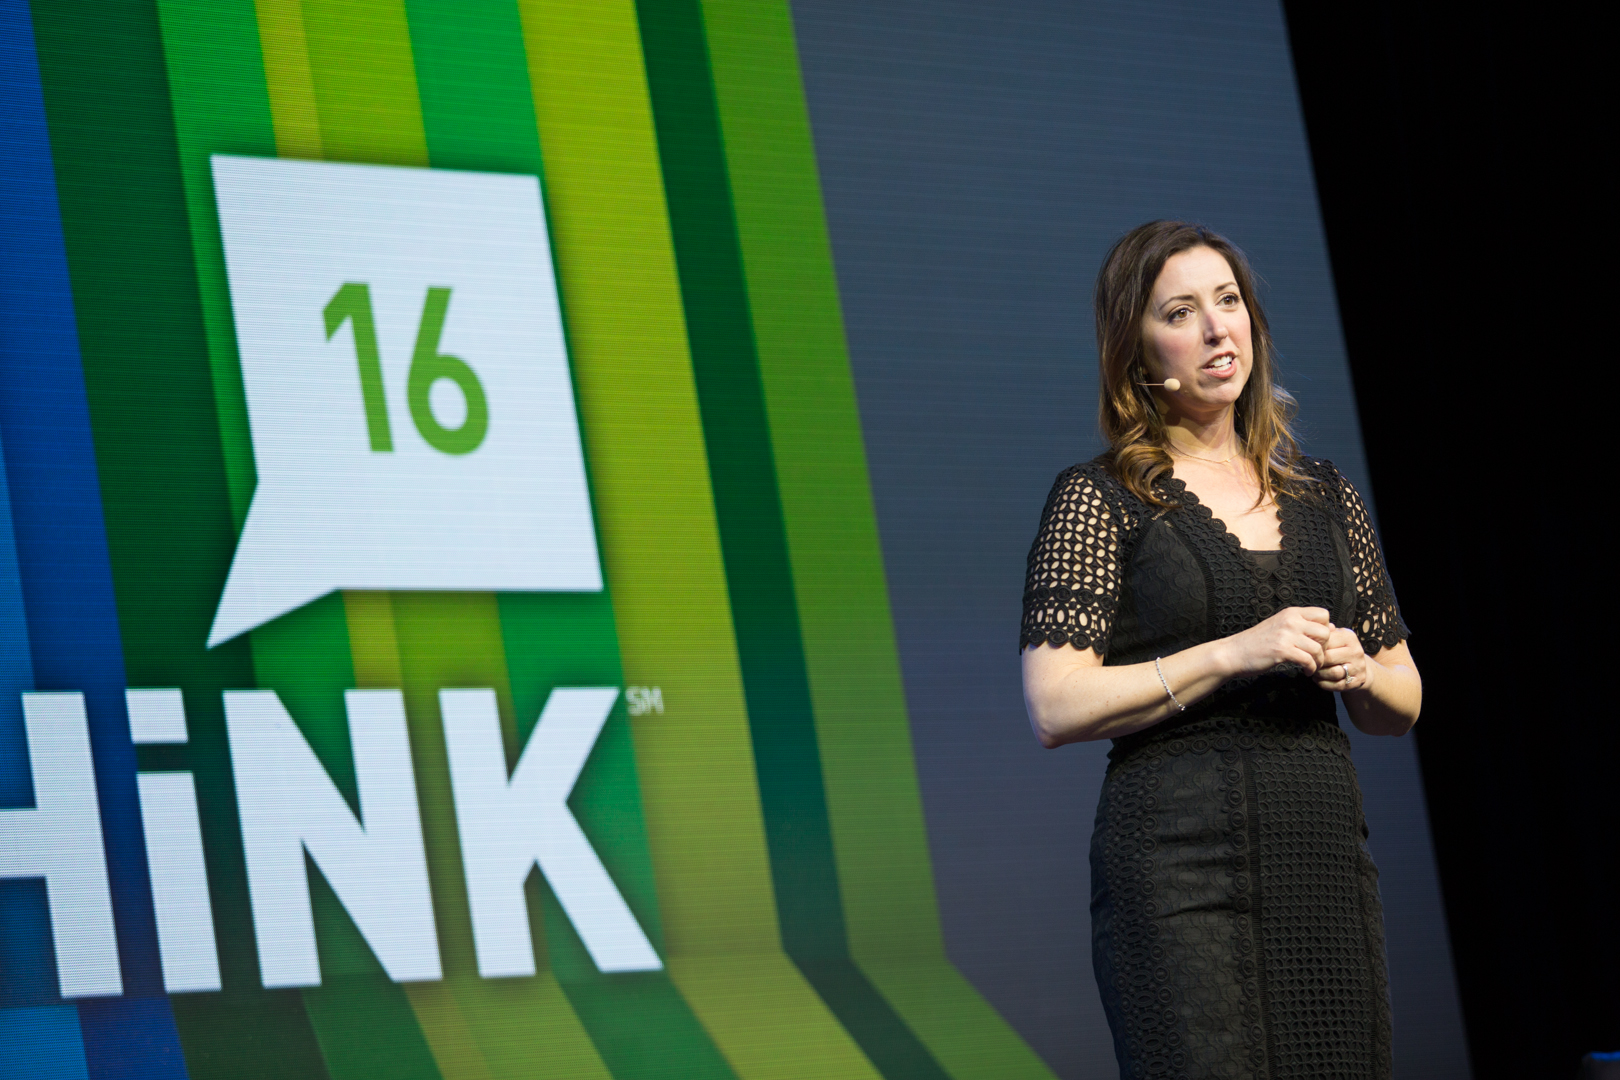 CO-OP Financial Services' Chief Marketing Officer Samantha Paxson